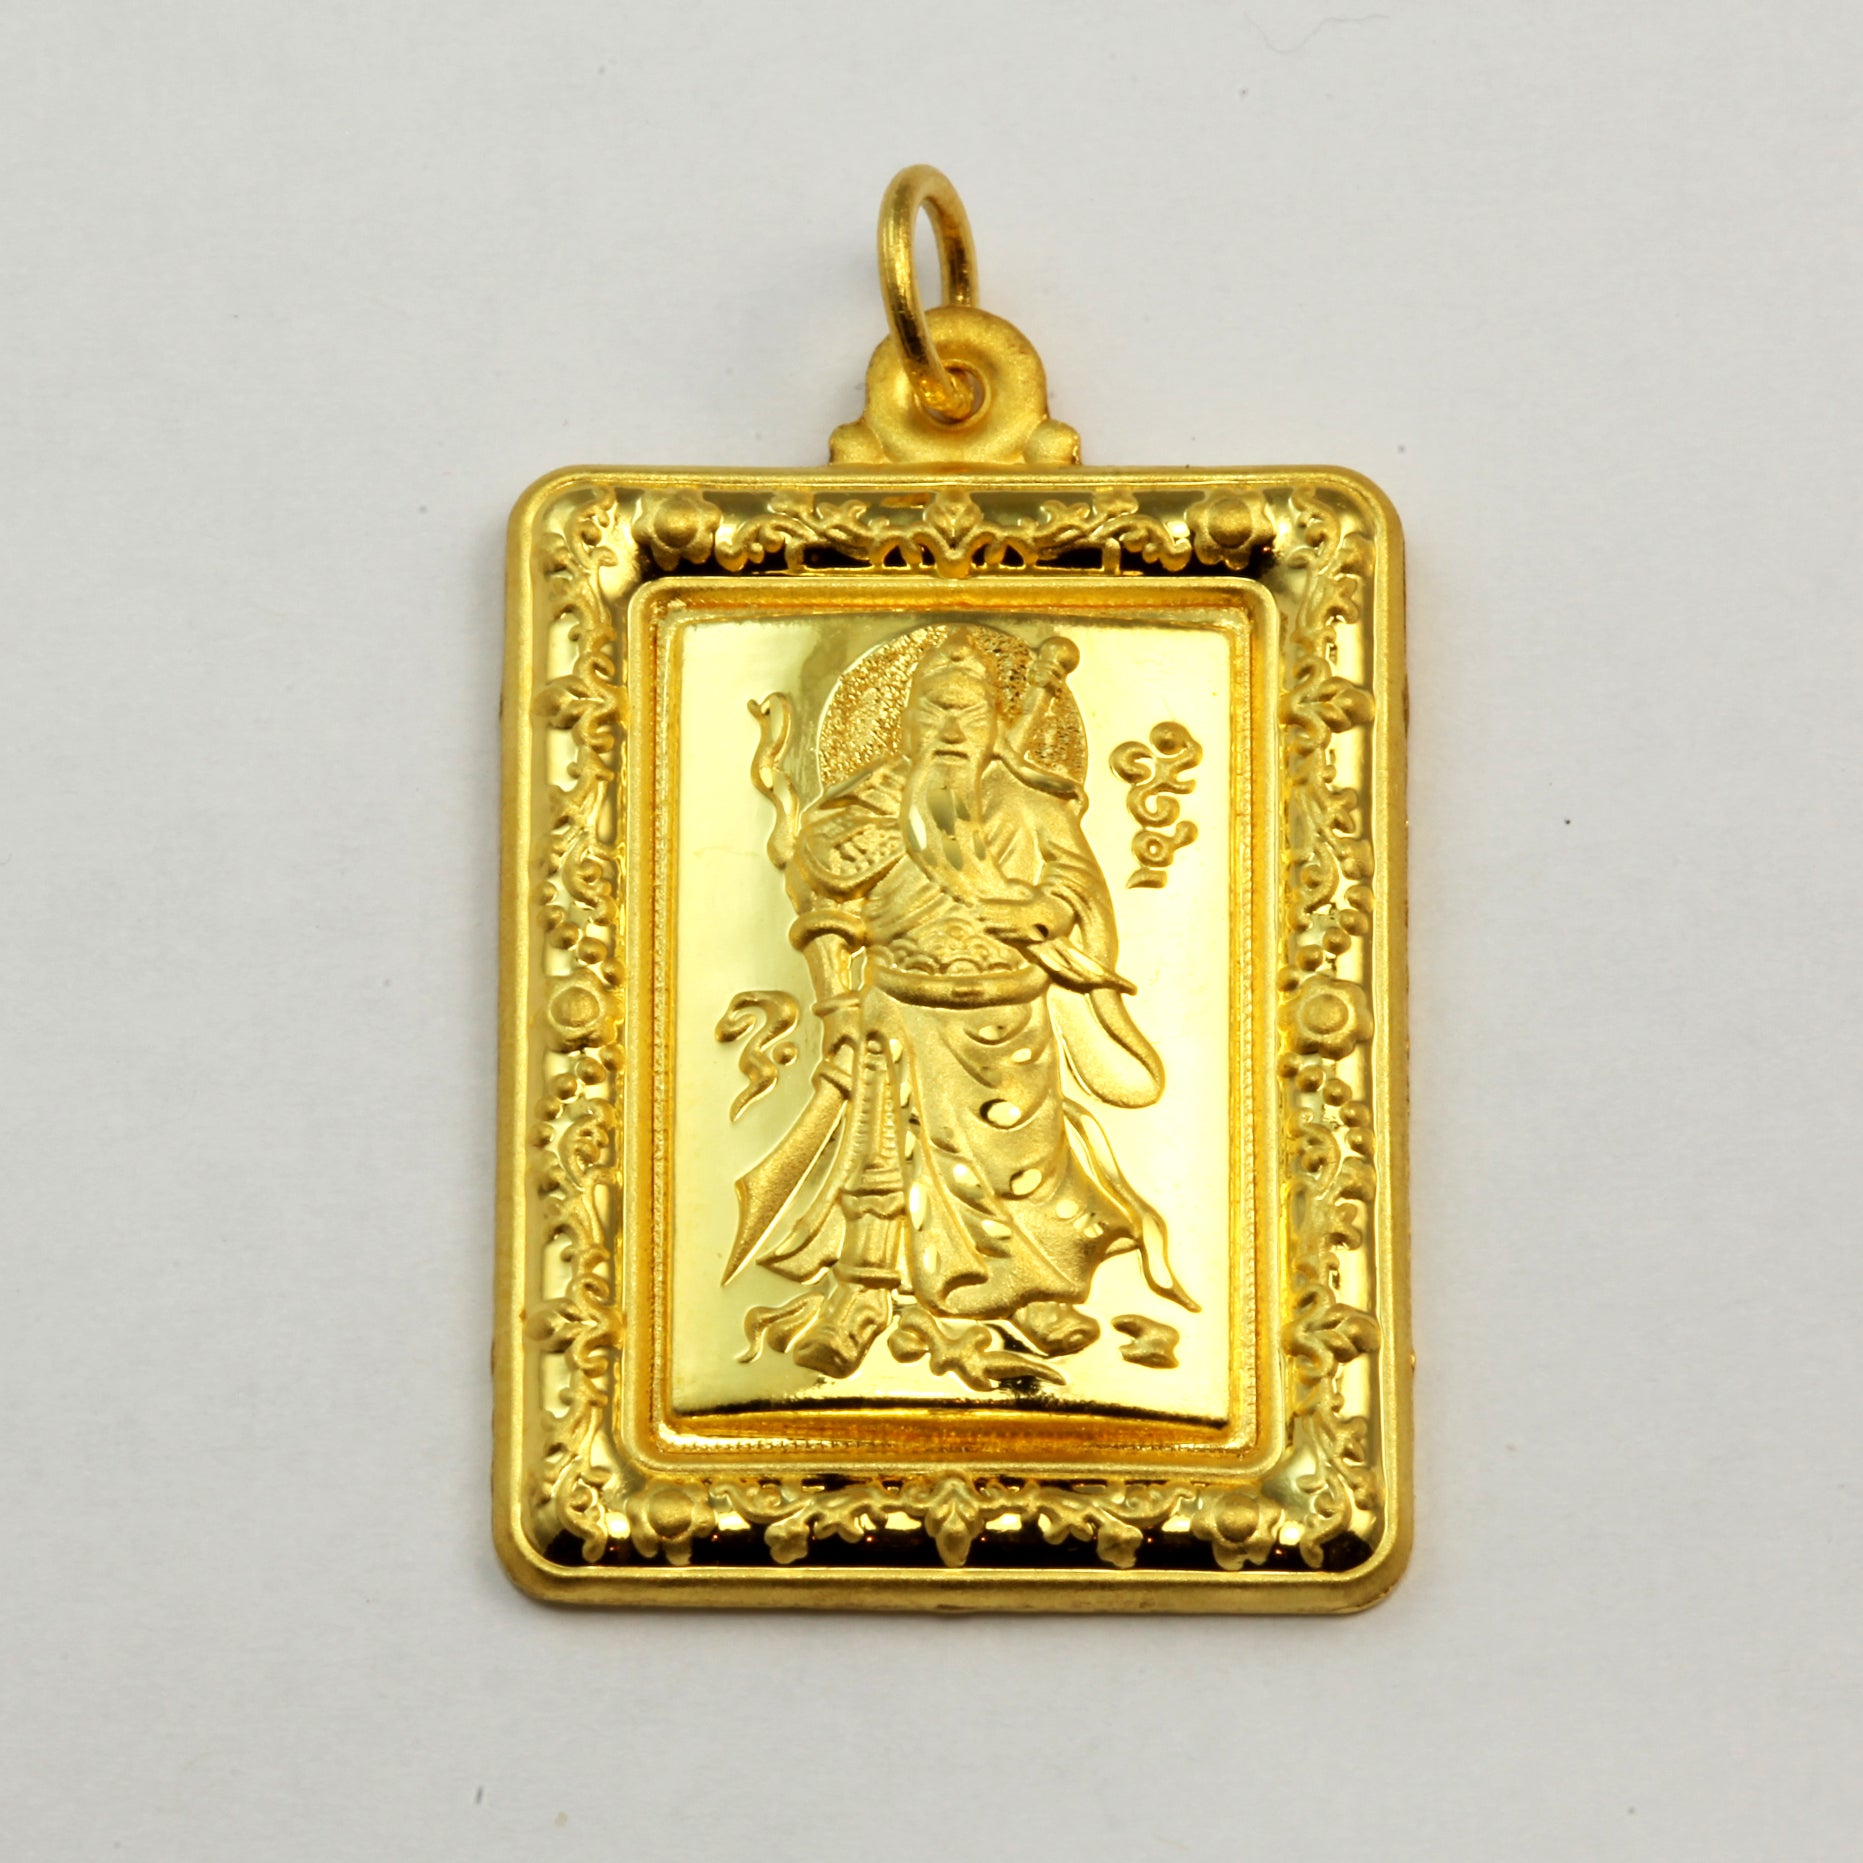 24K Solid Yellow Gold Hollow Guan Gong Warrior Pendant 7.8 Grams